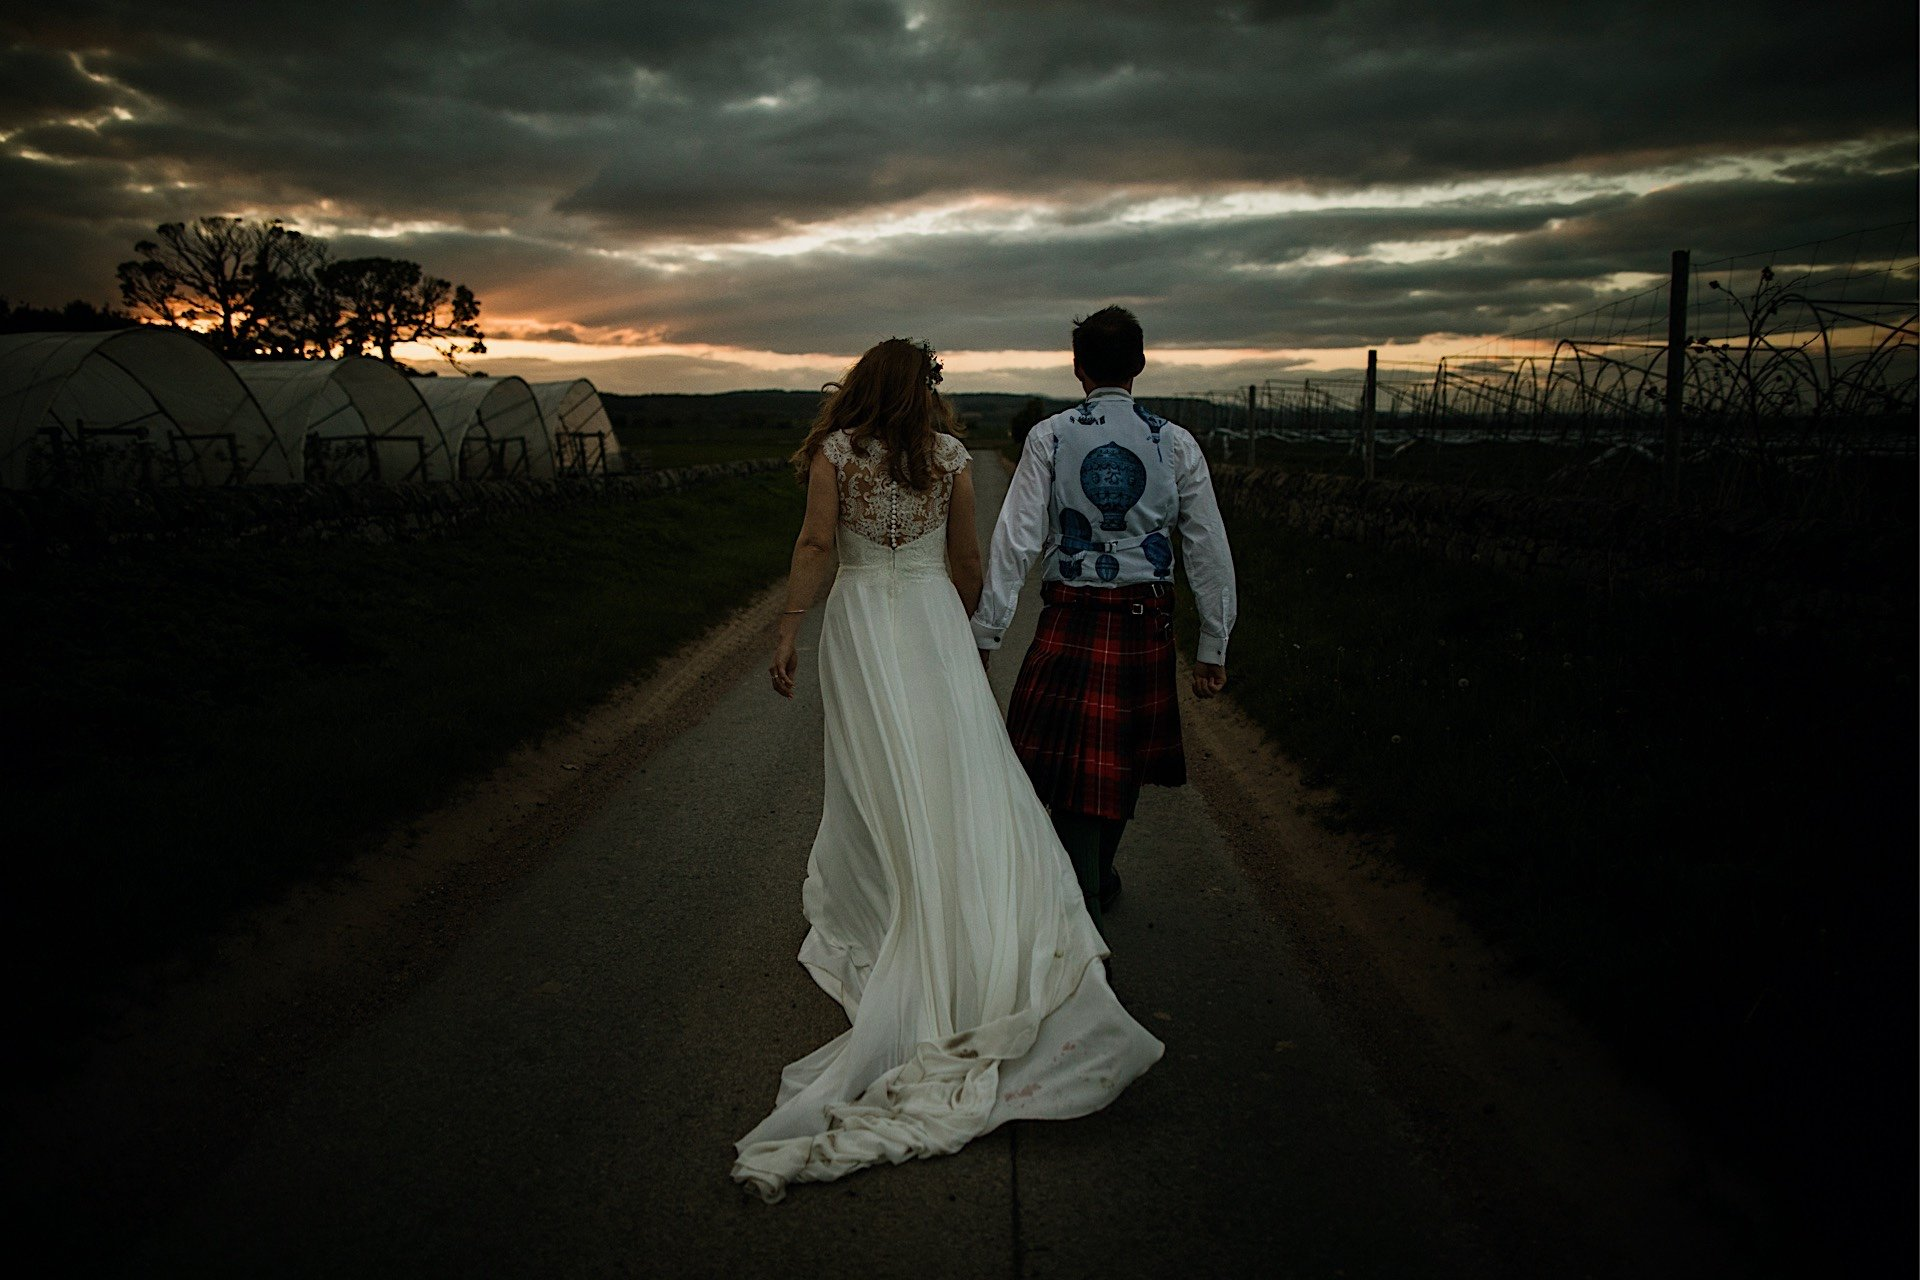 bride Wind in sunset at blowing down the Road and brides Walking groom dress